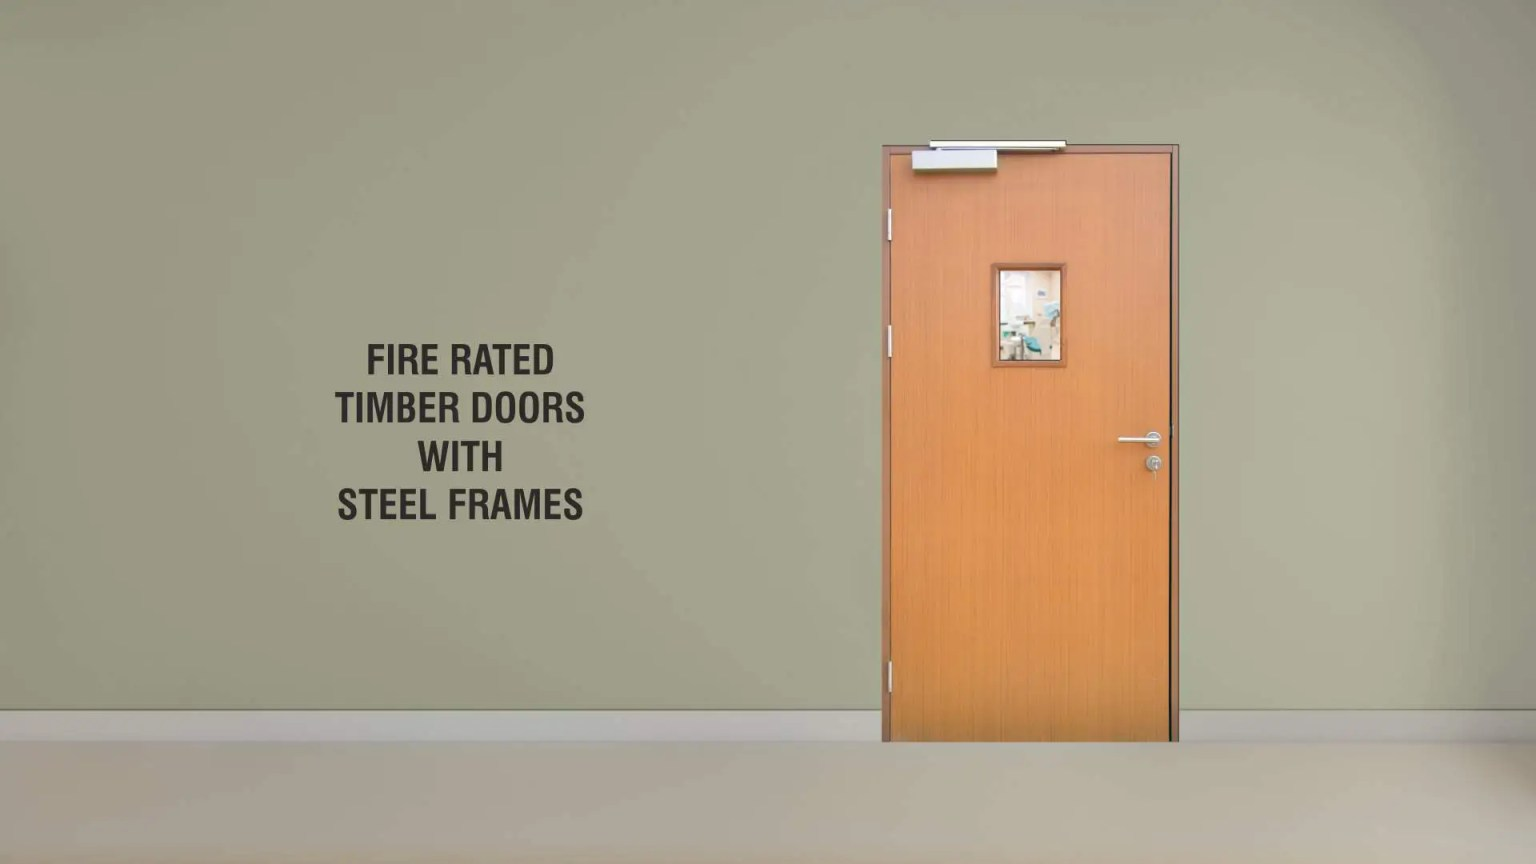 fire-rated-timber-doors-steel-frames